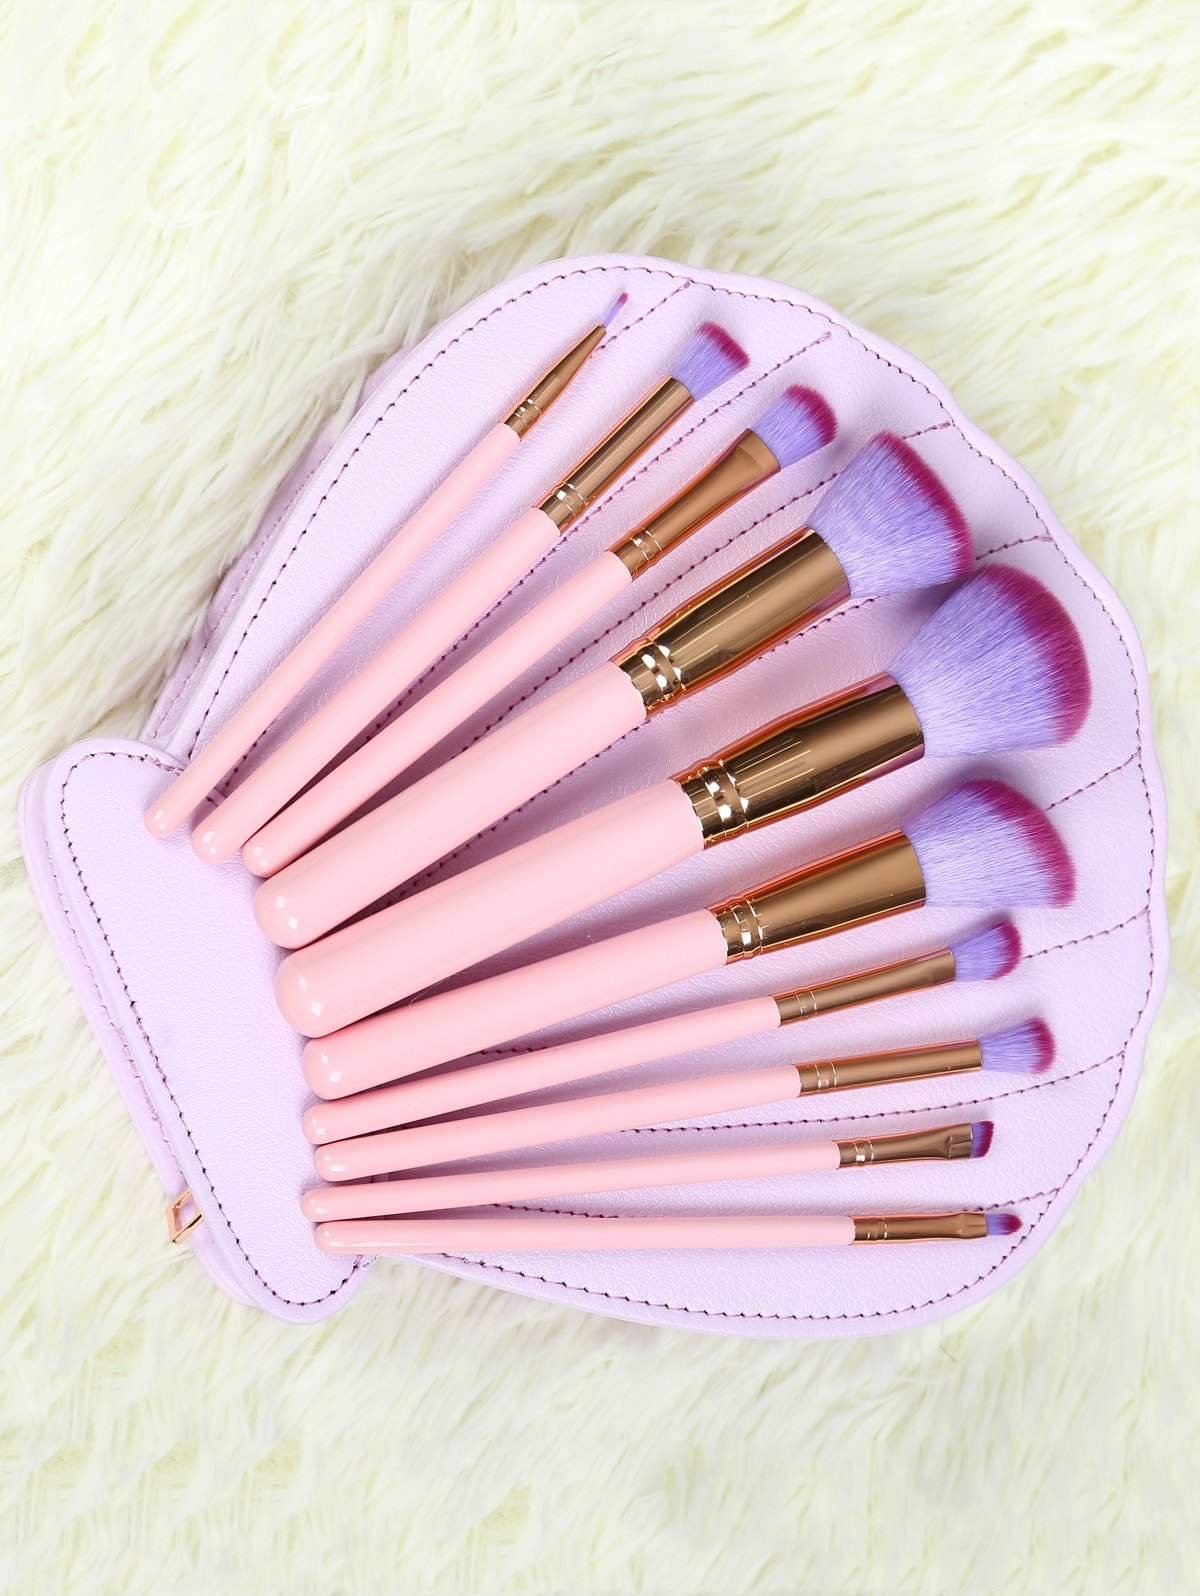 10 Pcs Makeup Brushes Set with Scallop Brush Bag - PINK